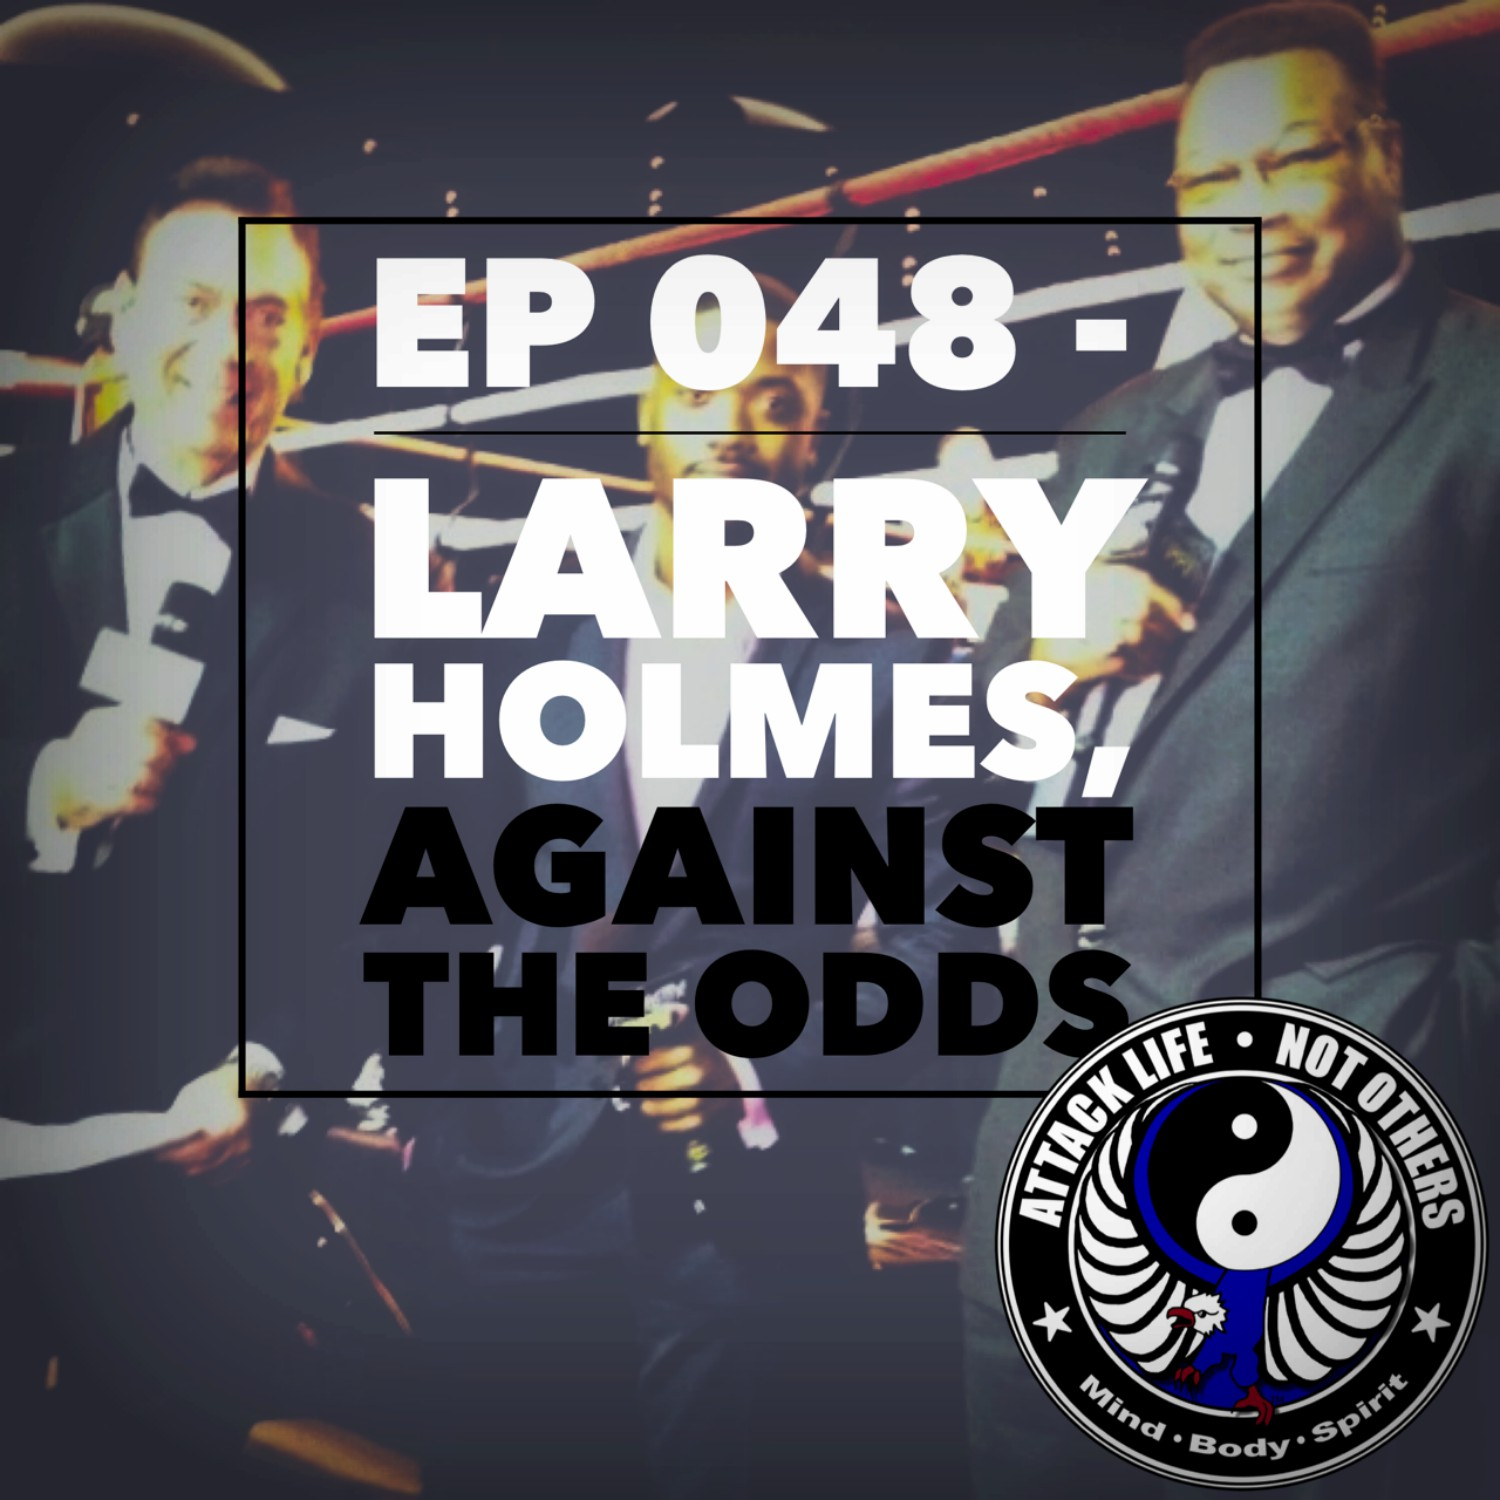 Artwork for Ep 048 - Larry Holmes, Against The Odds